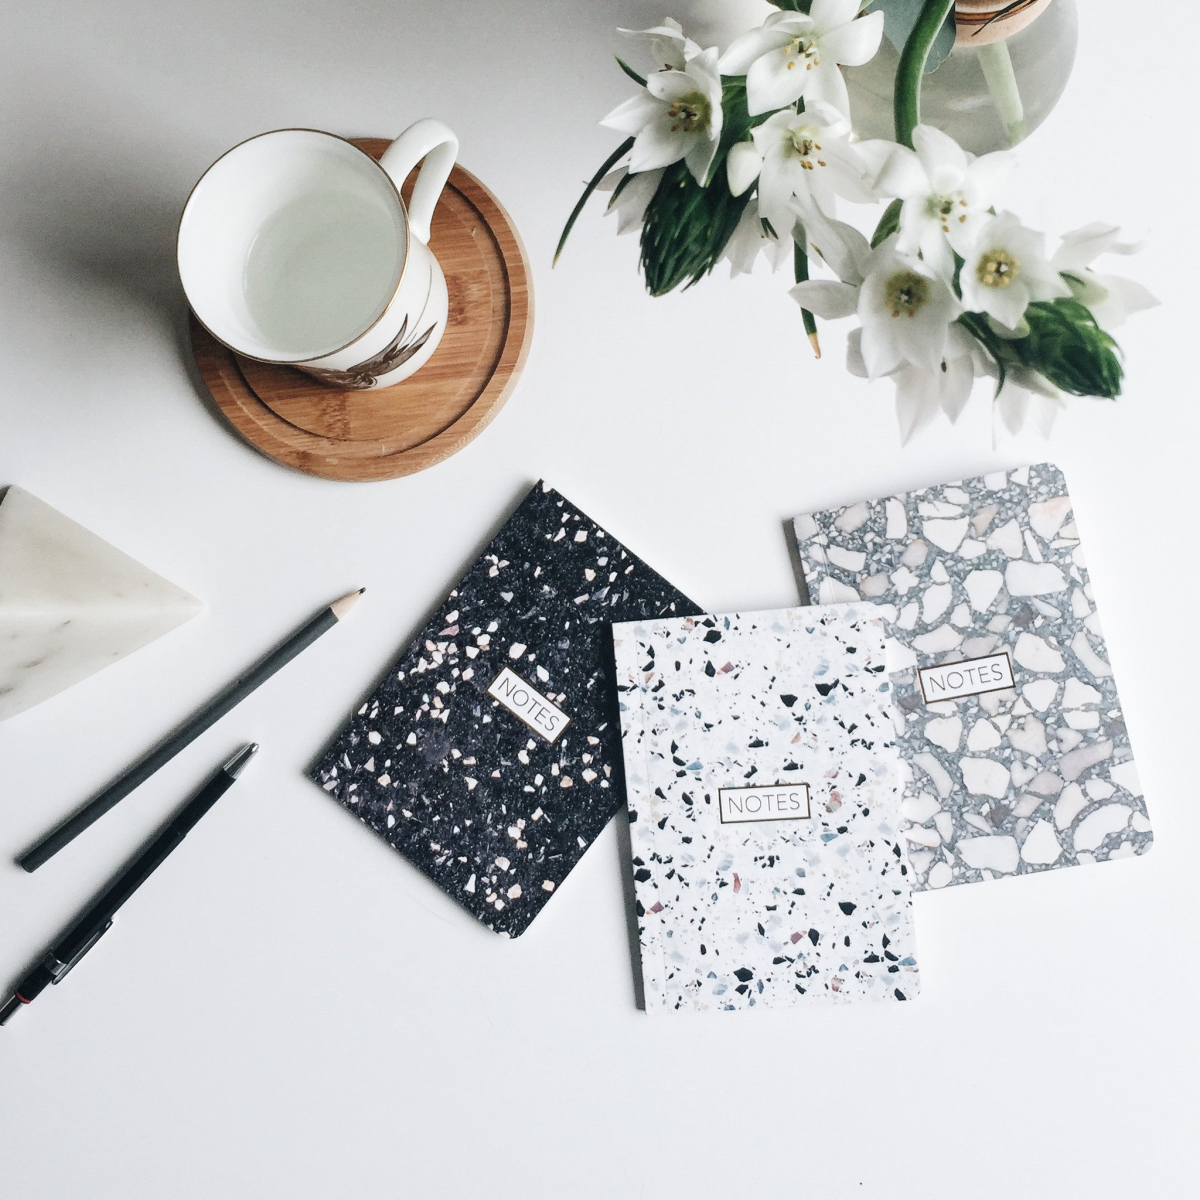 Terrazzo notebooks from Form Maker